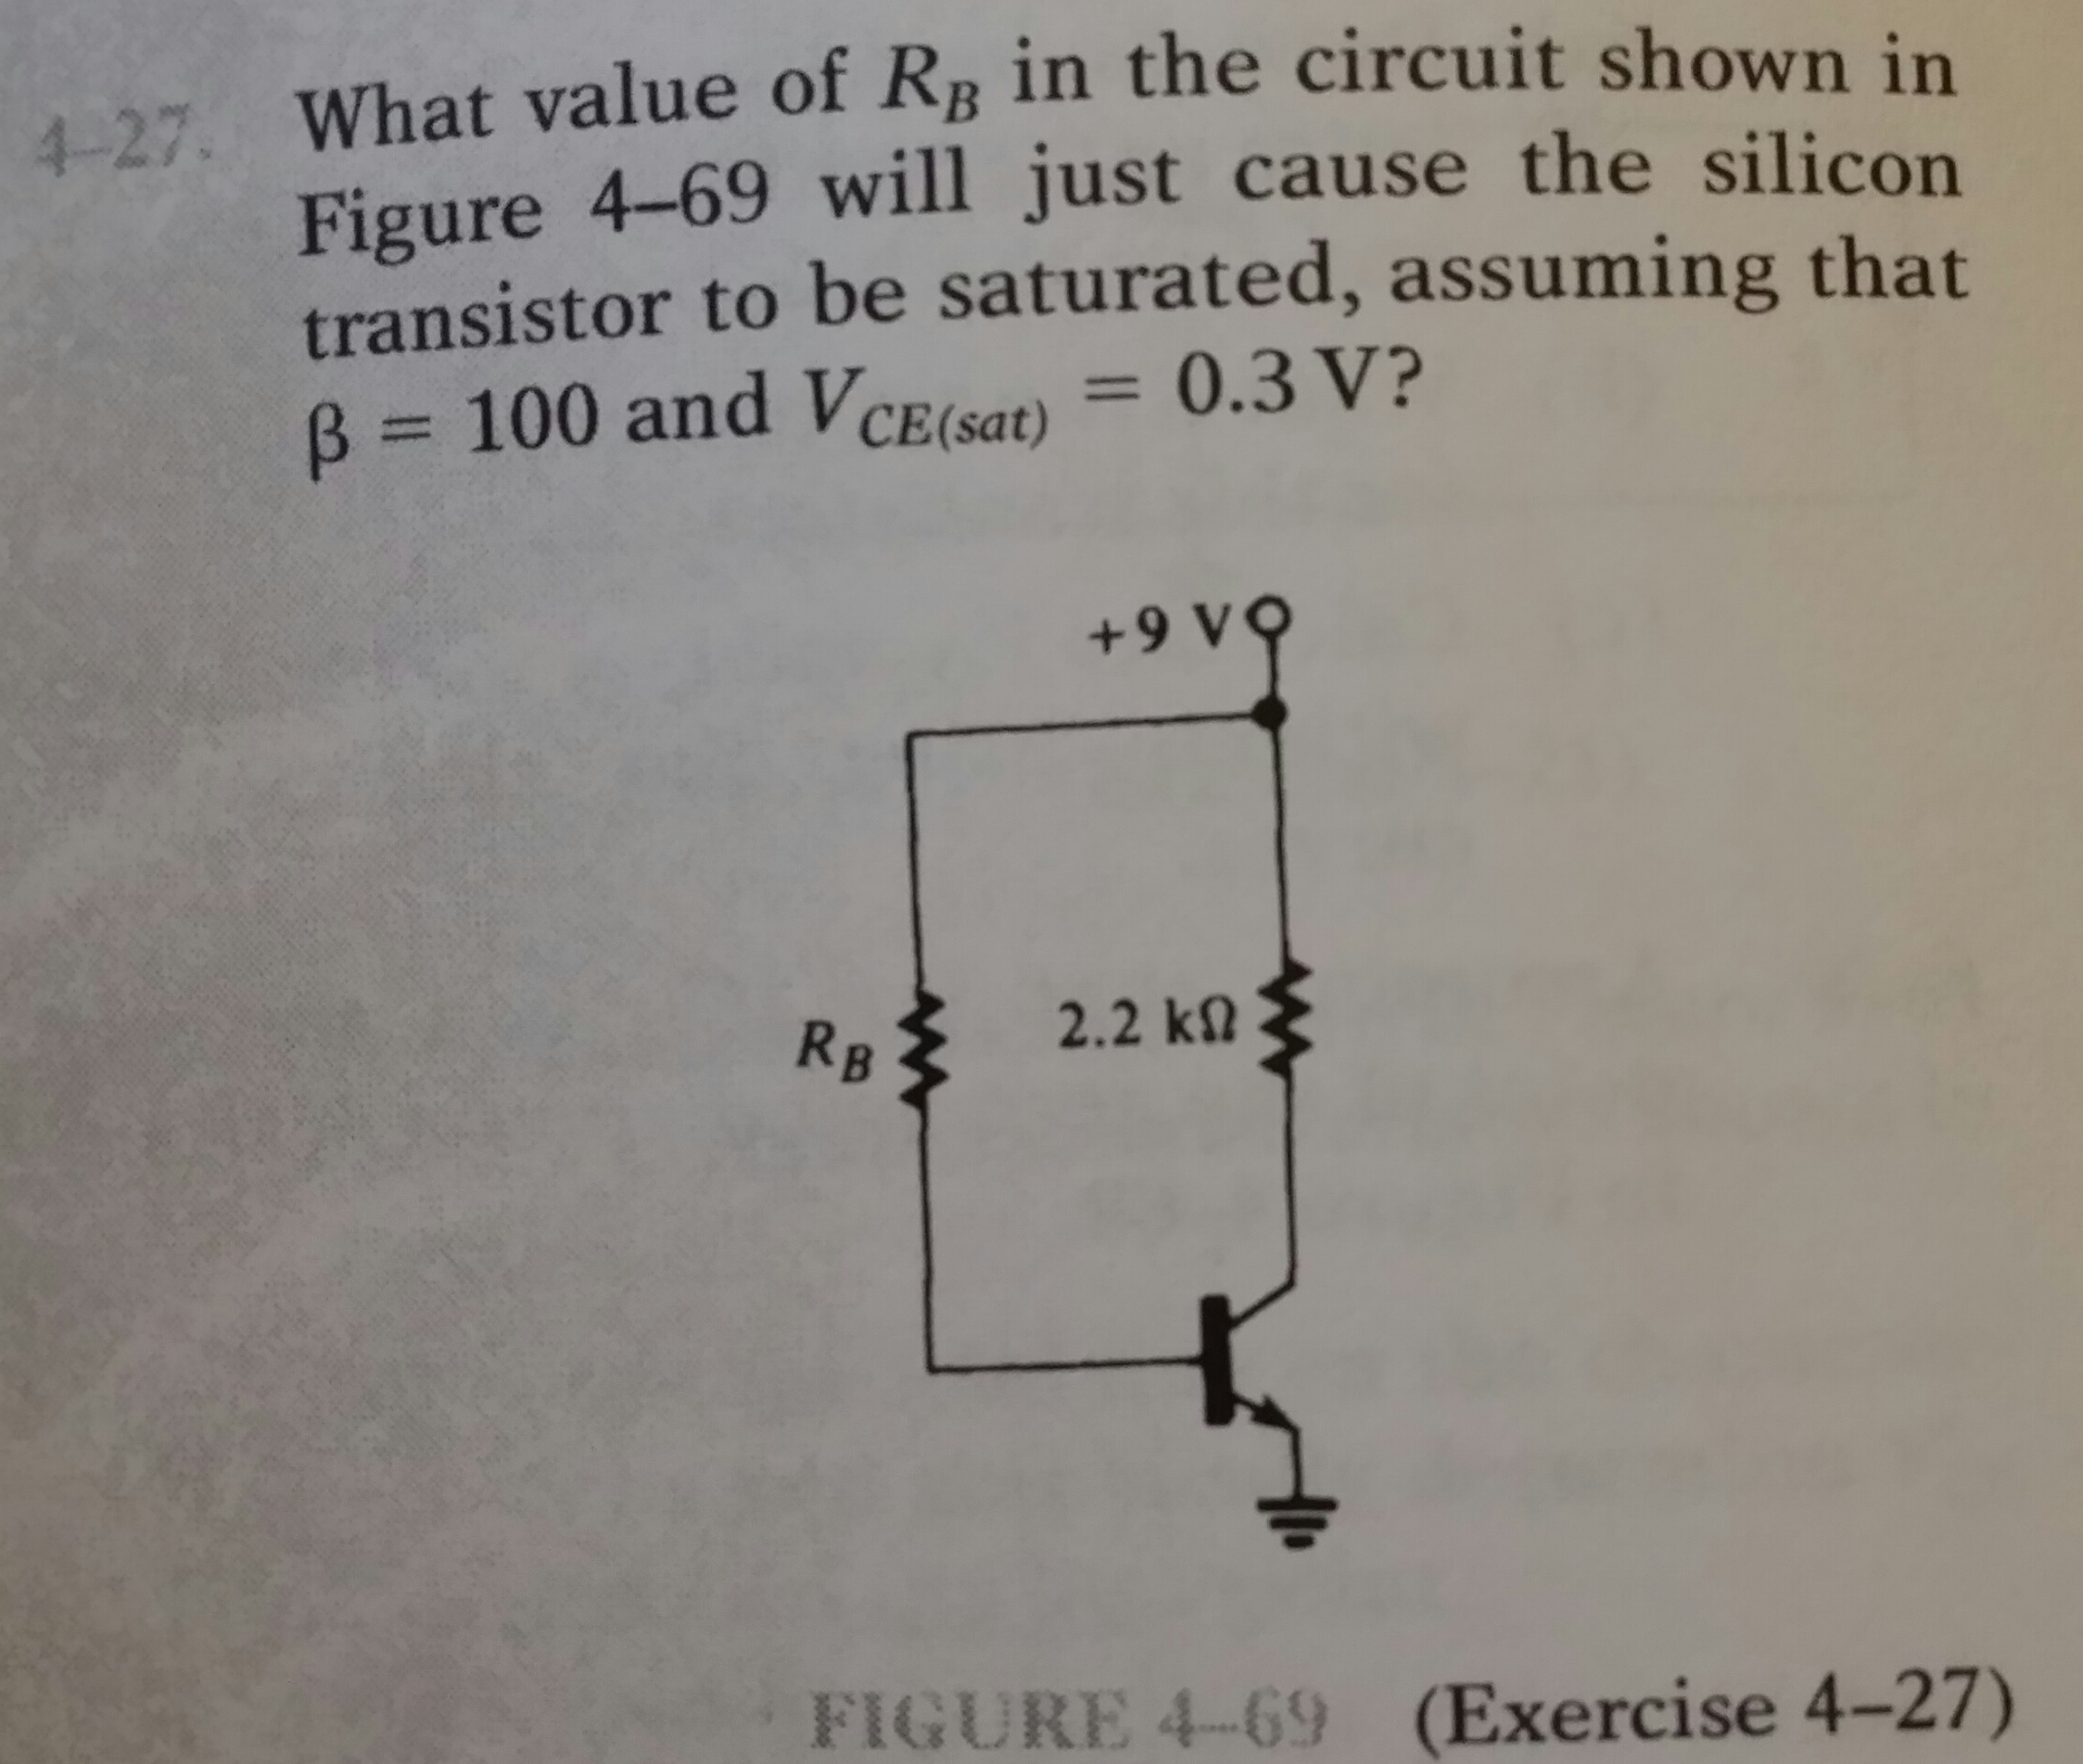 What value of RB in the circuit shown in Figure 4-